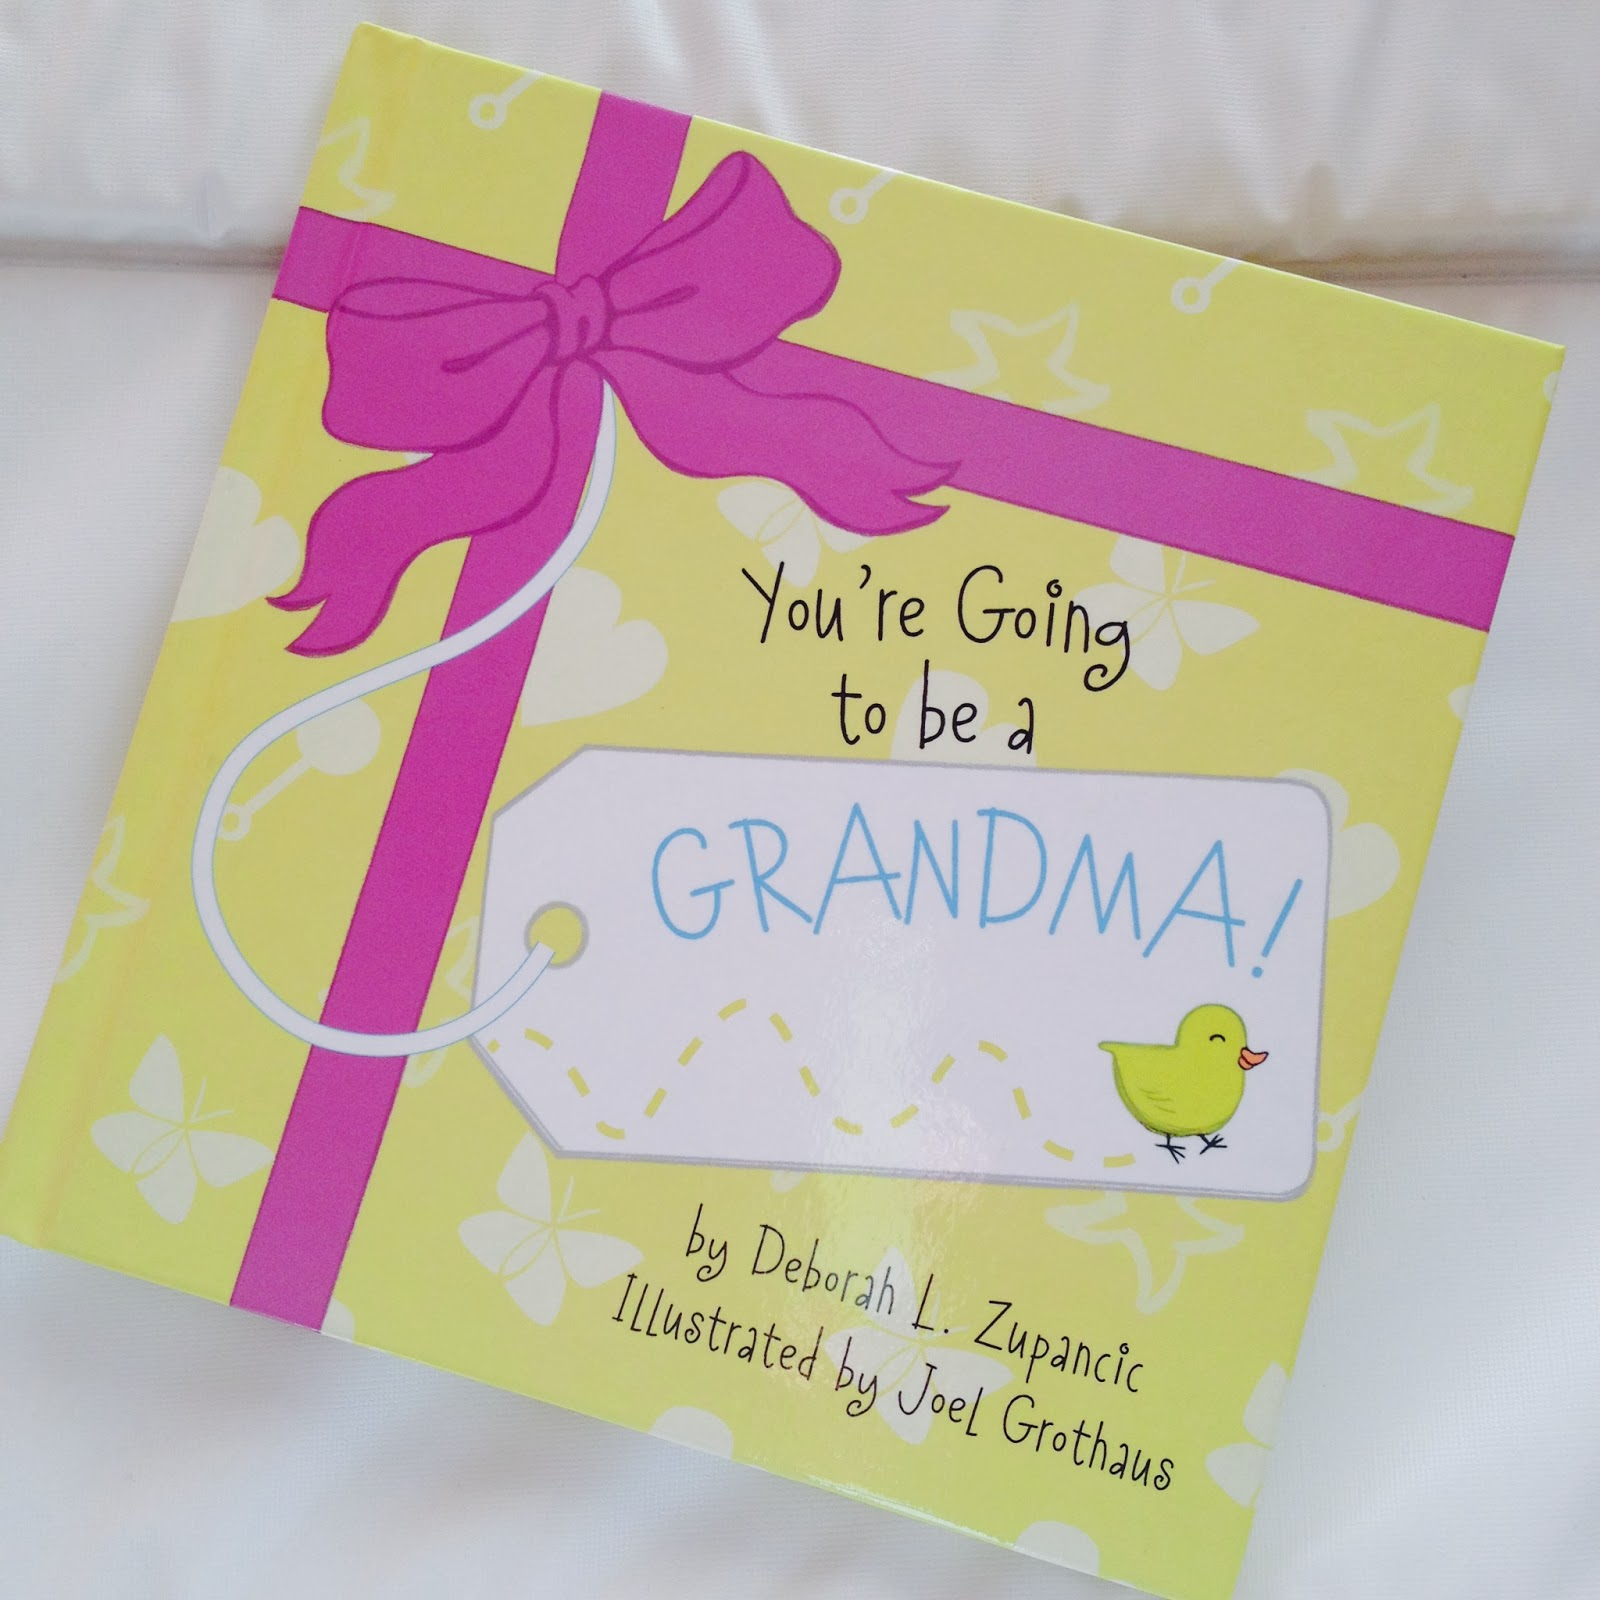 mamasVIB | V. I. BOOKCLUB: A cute way to tell your own mama 'You're going to be a granny'| A cute way to tell your own mama 'You're going to be a granny'| gift idea | birth announcement | New mums | grandparents gift | mamasVIB | keepsake book